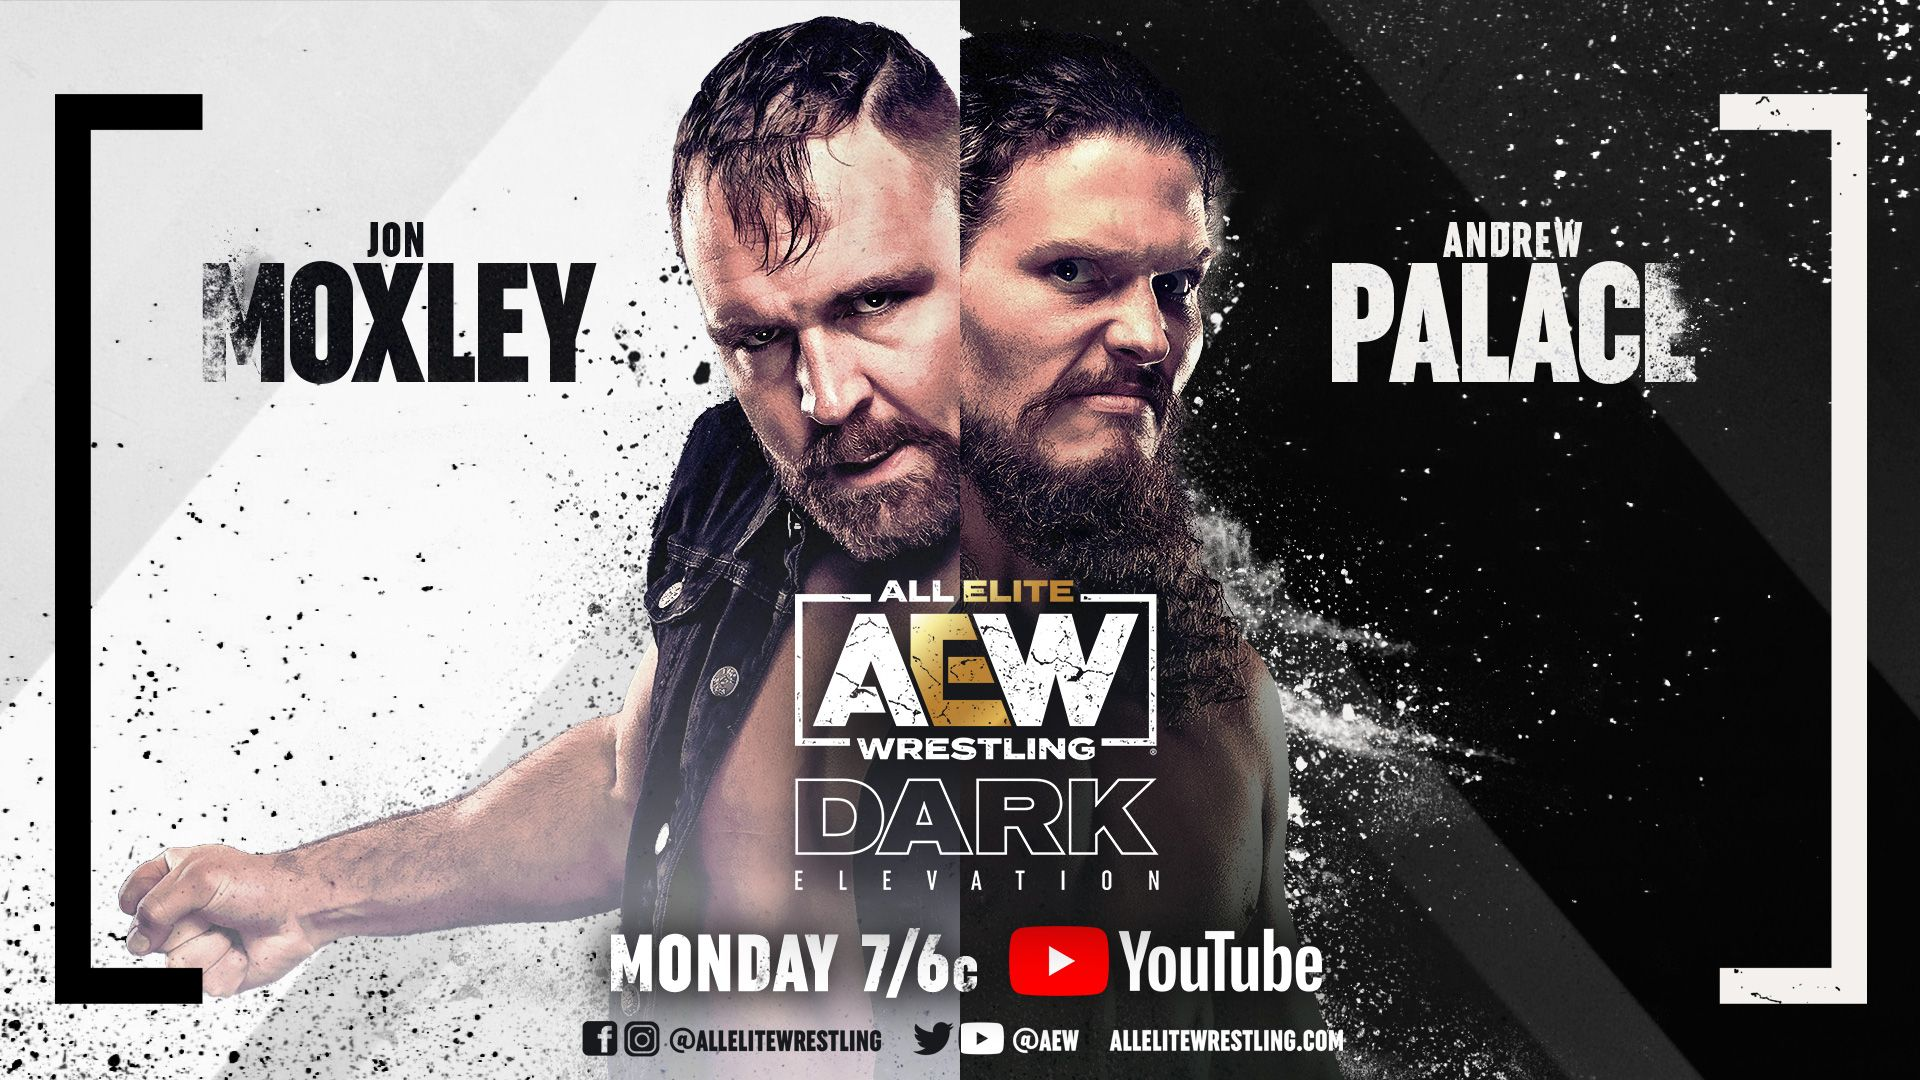 AEW Dark: Elevation Results (5/3): Jon Moxley, Miro, Thunder Rosa And More In Action